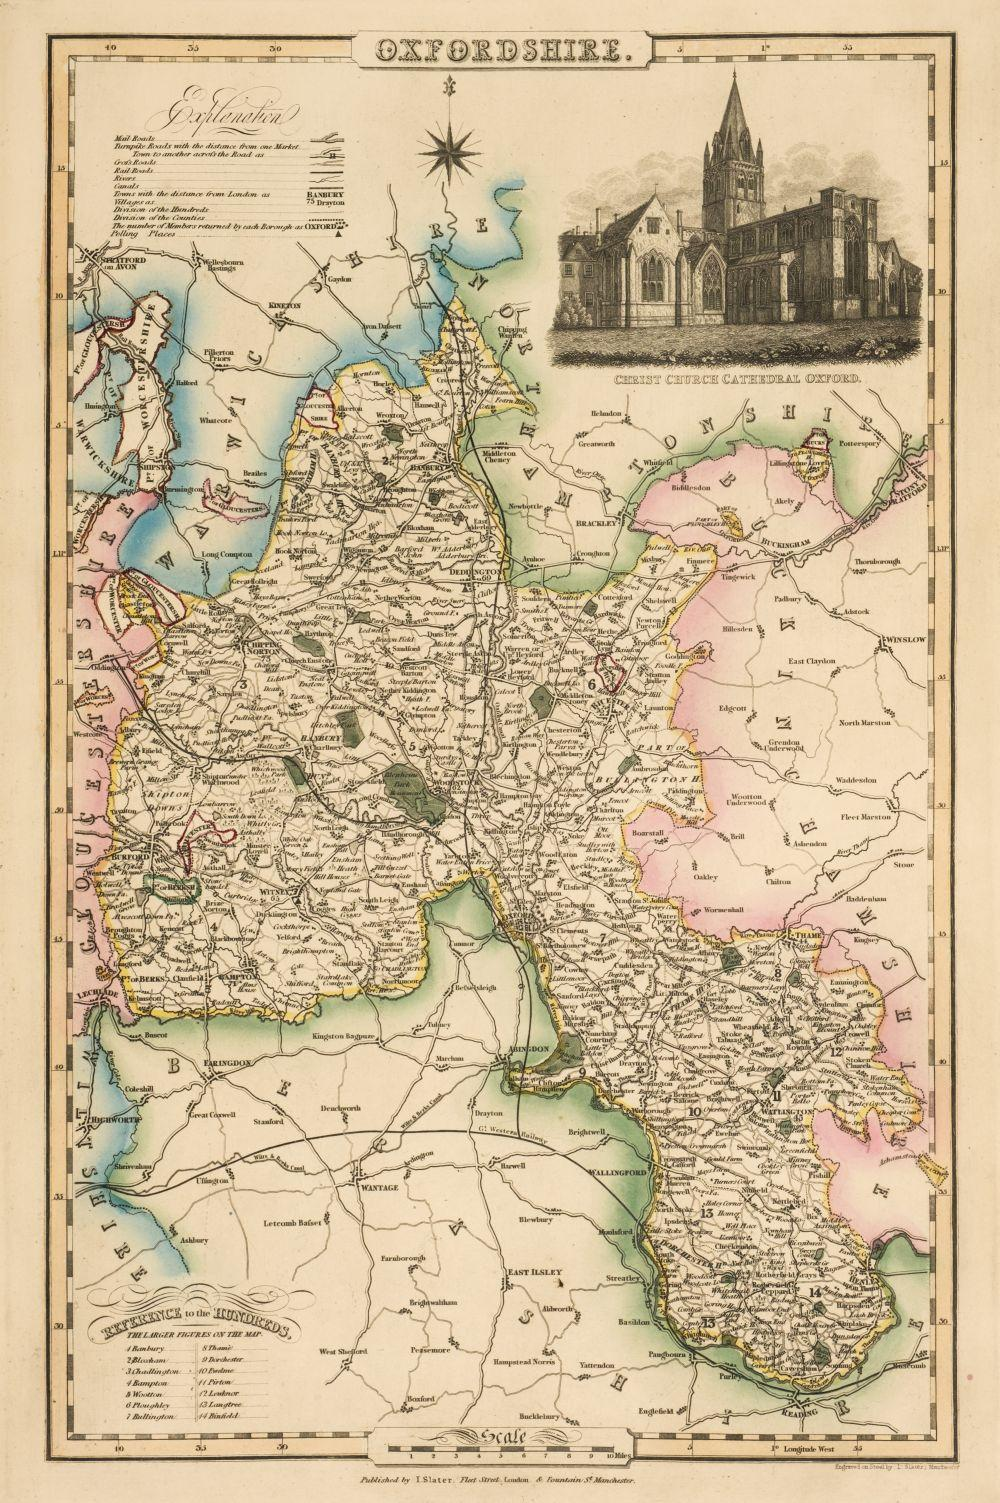 Slater (Isaac, publisher). I. Slater's New British Atlas comprising the Counties of England..., 1857